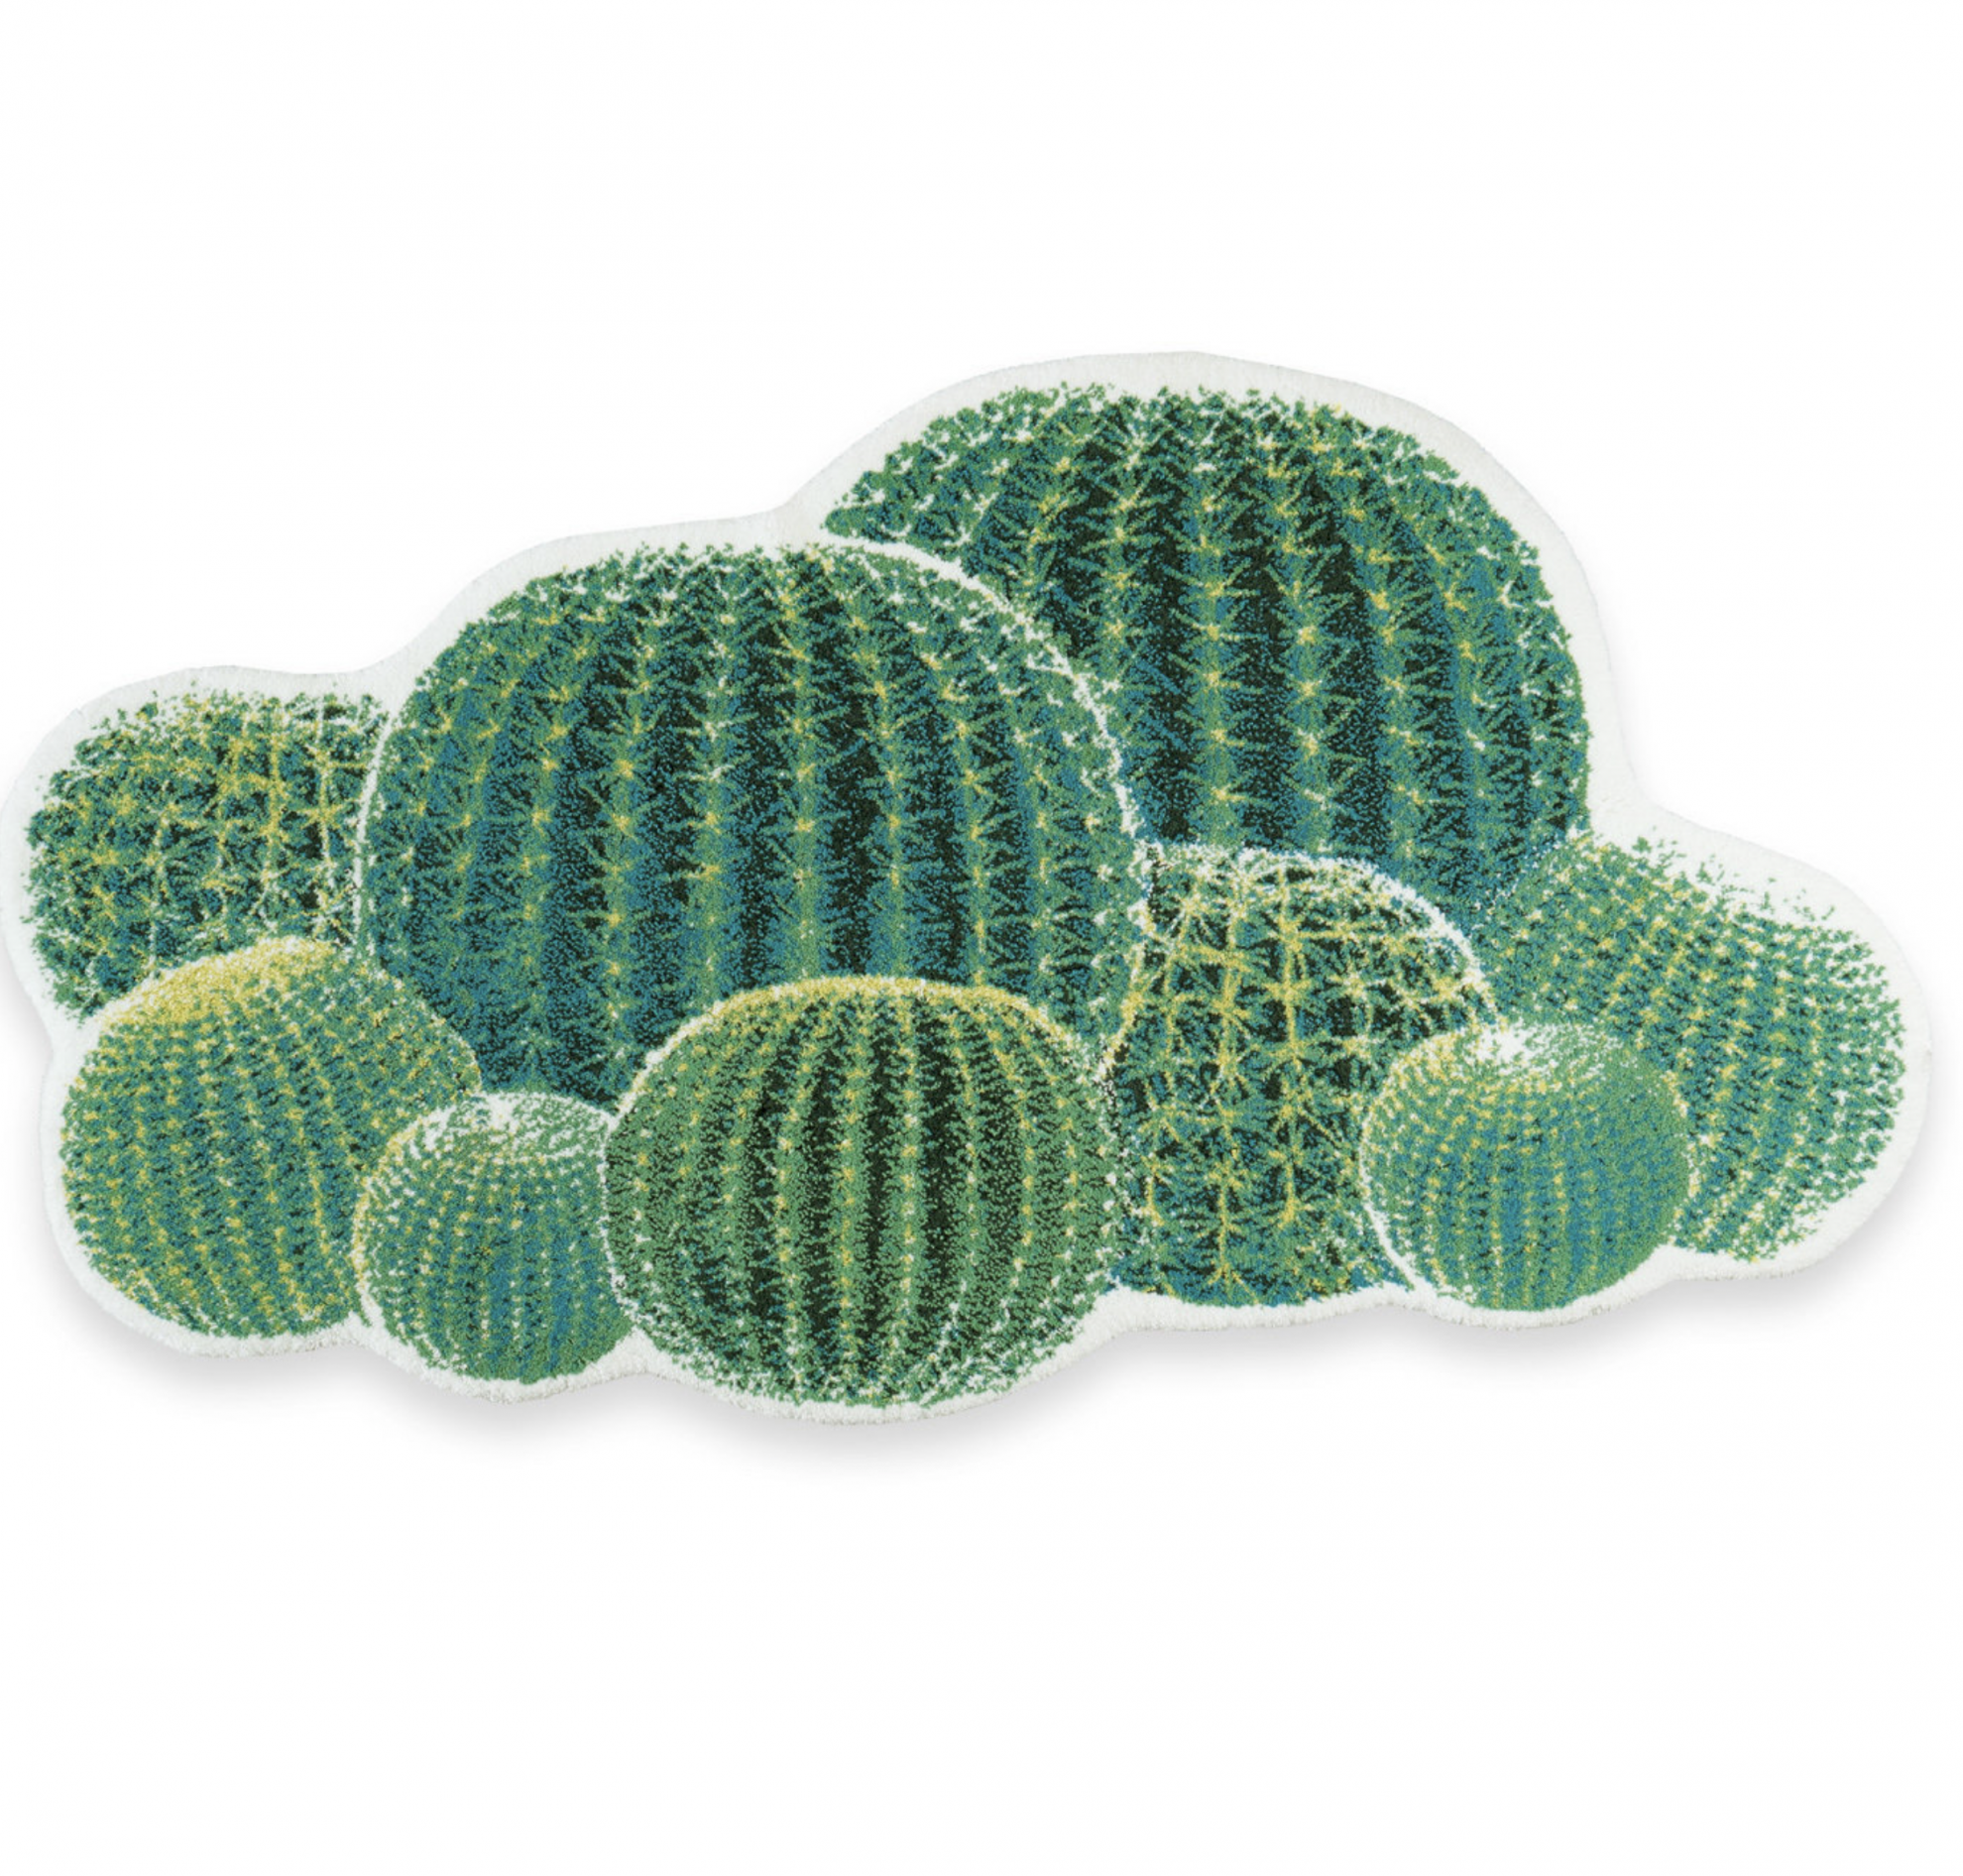 Abyss & Habidecor - Tappeto bagno Cactus 90x140